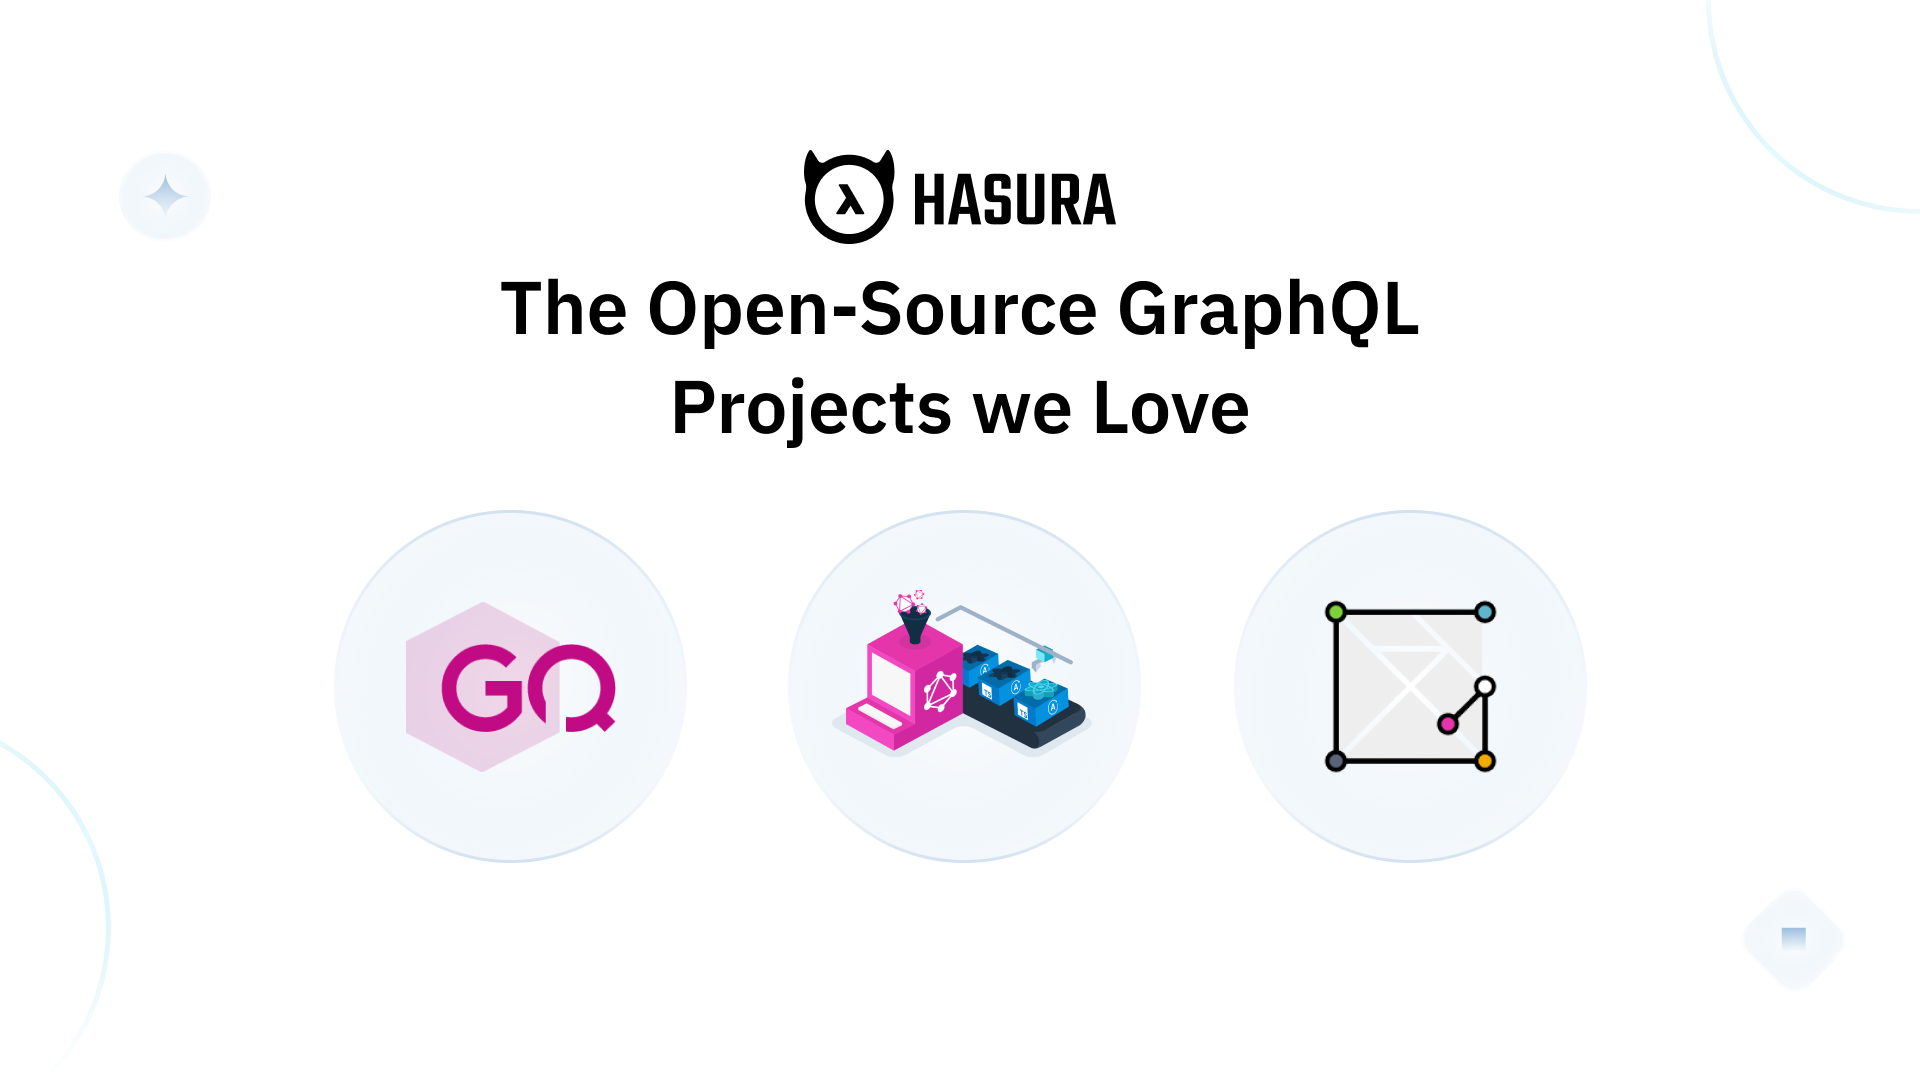 3 Open-Source GraphQL Projects We Love